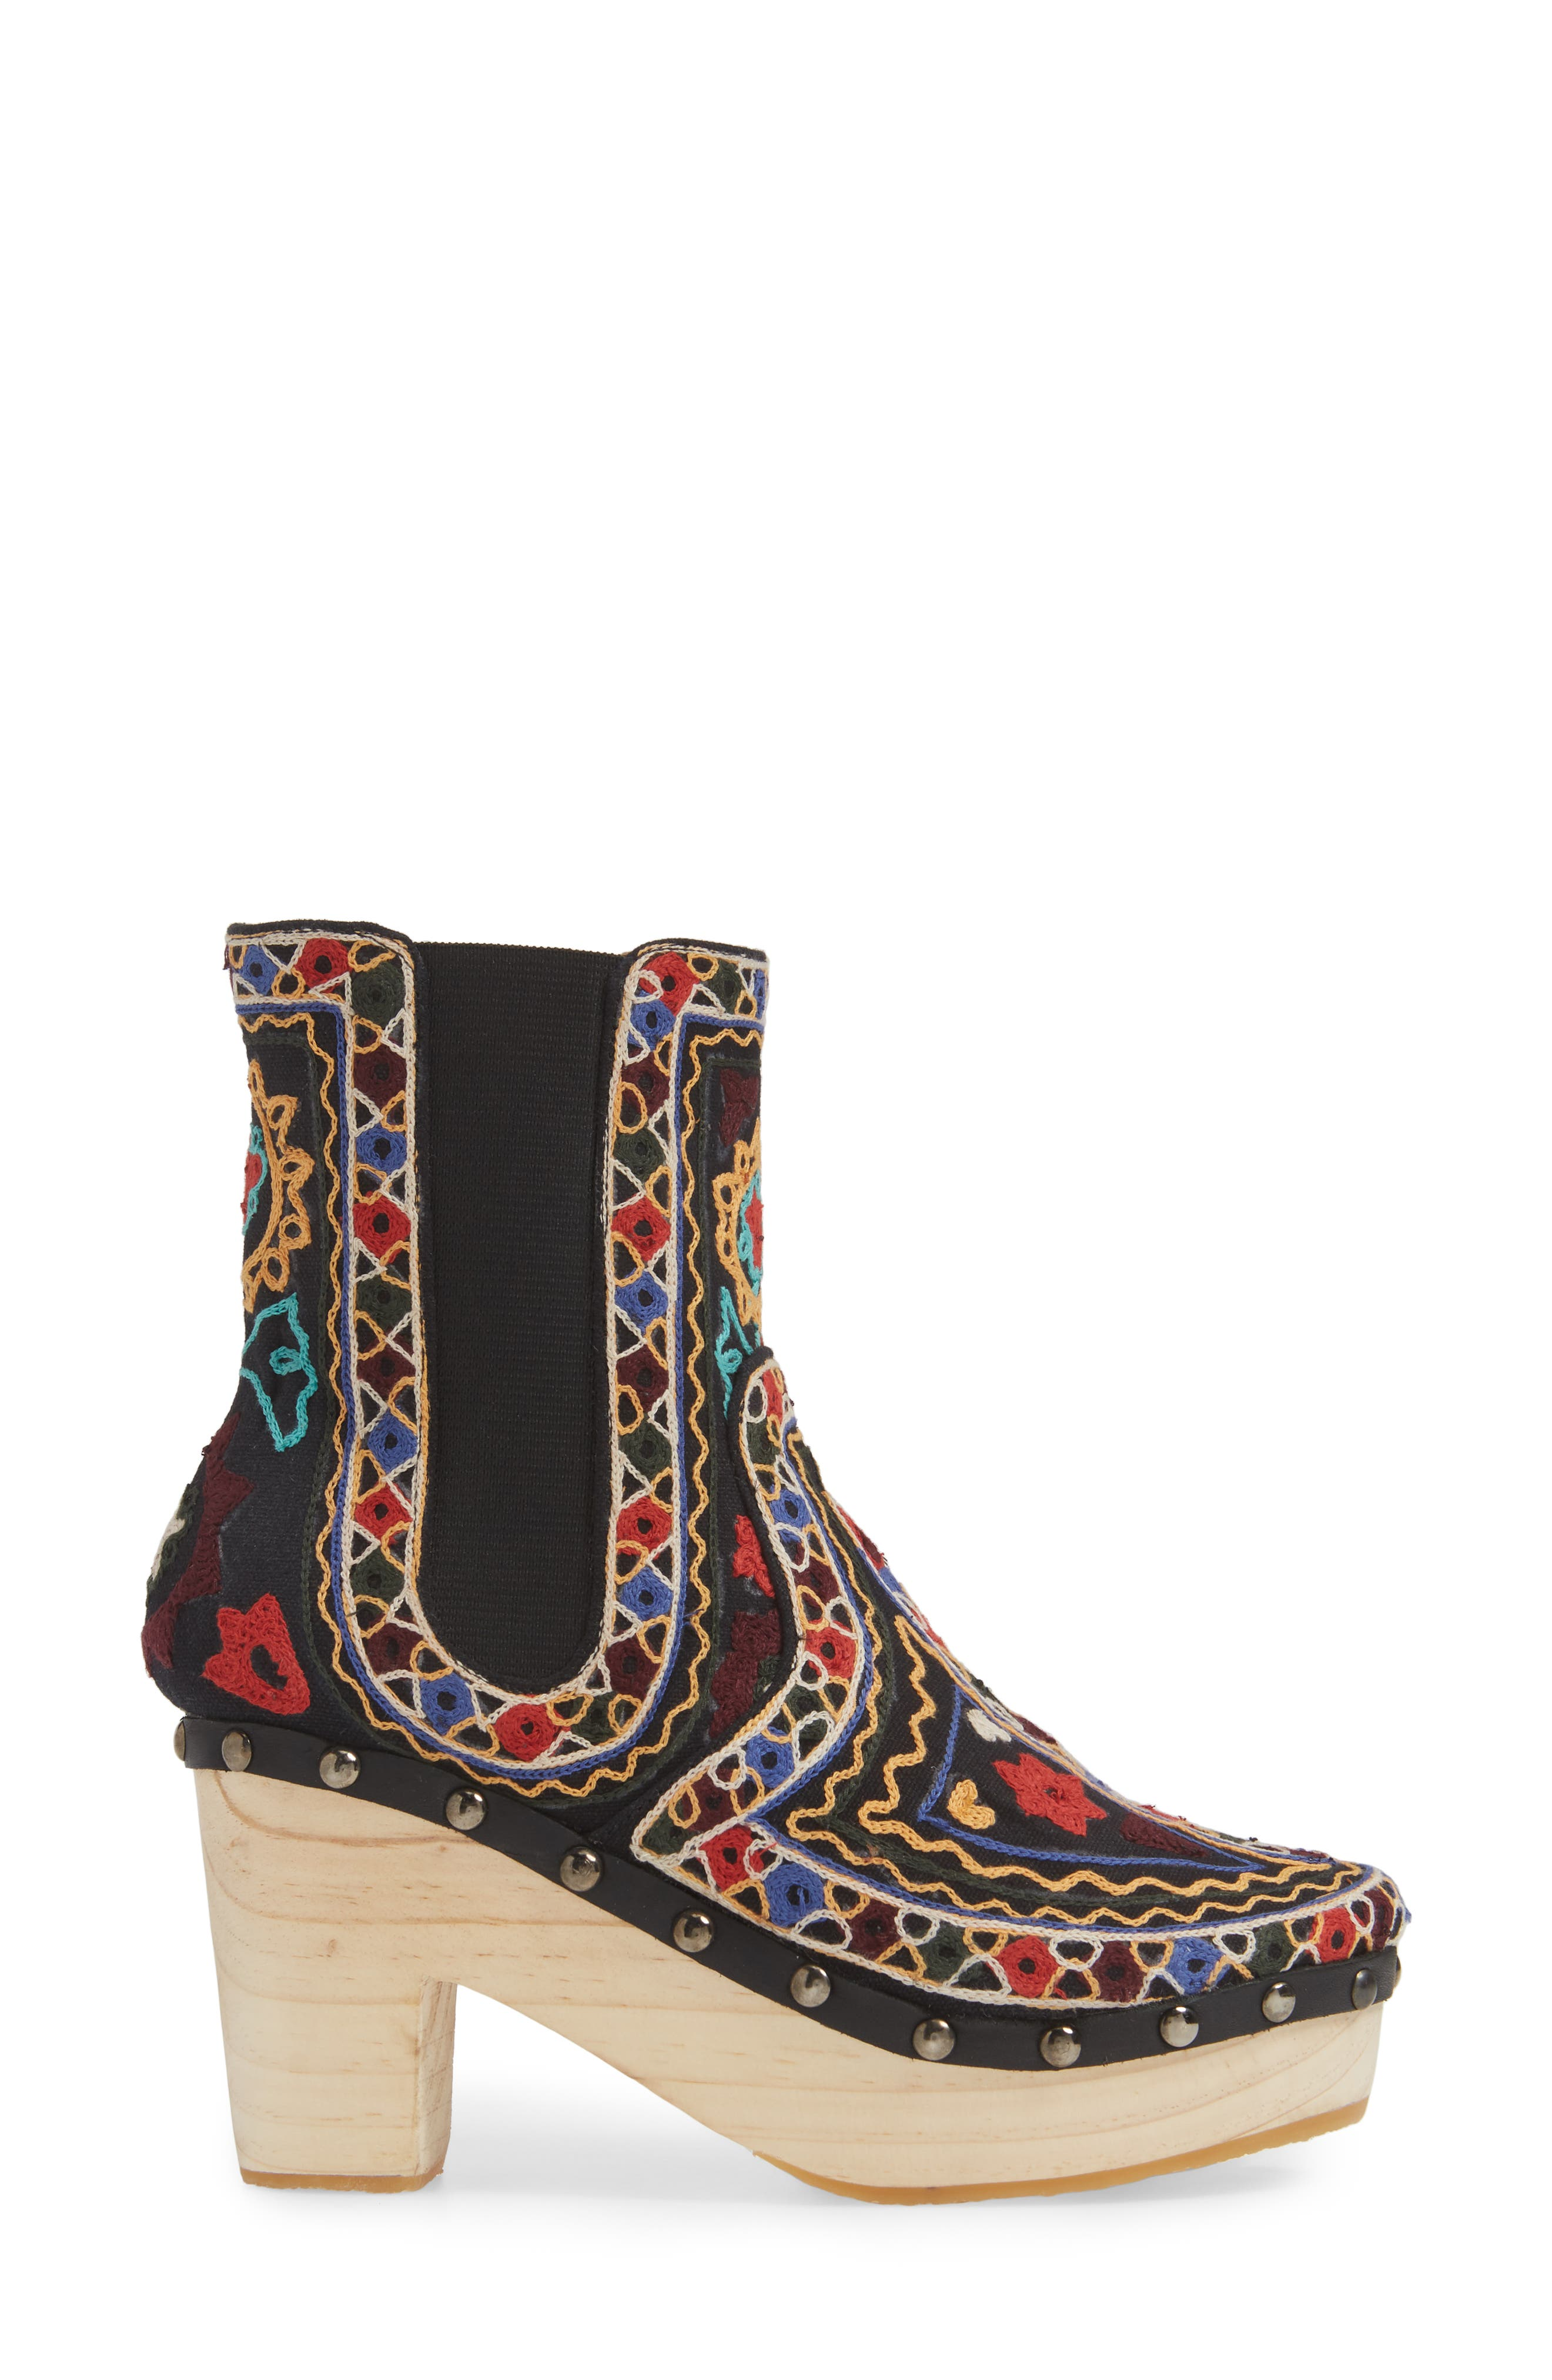 FREE PEOPLE,                             West Johanna Clog Bootie,                             Alternate thumbnail 3, color,                             BLACK EMBROIDERED FABRIC